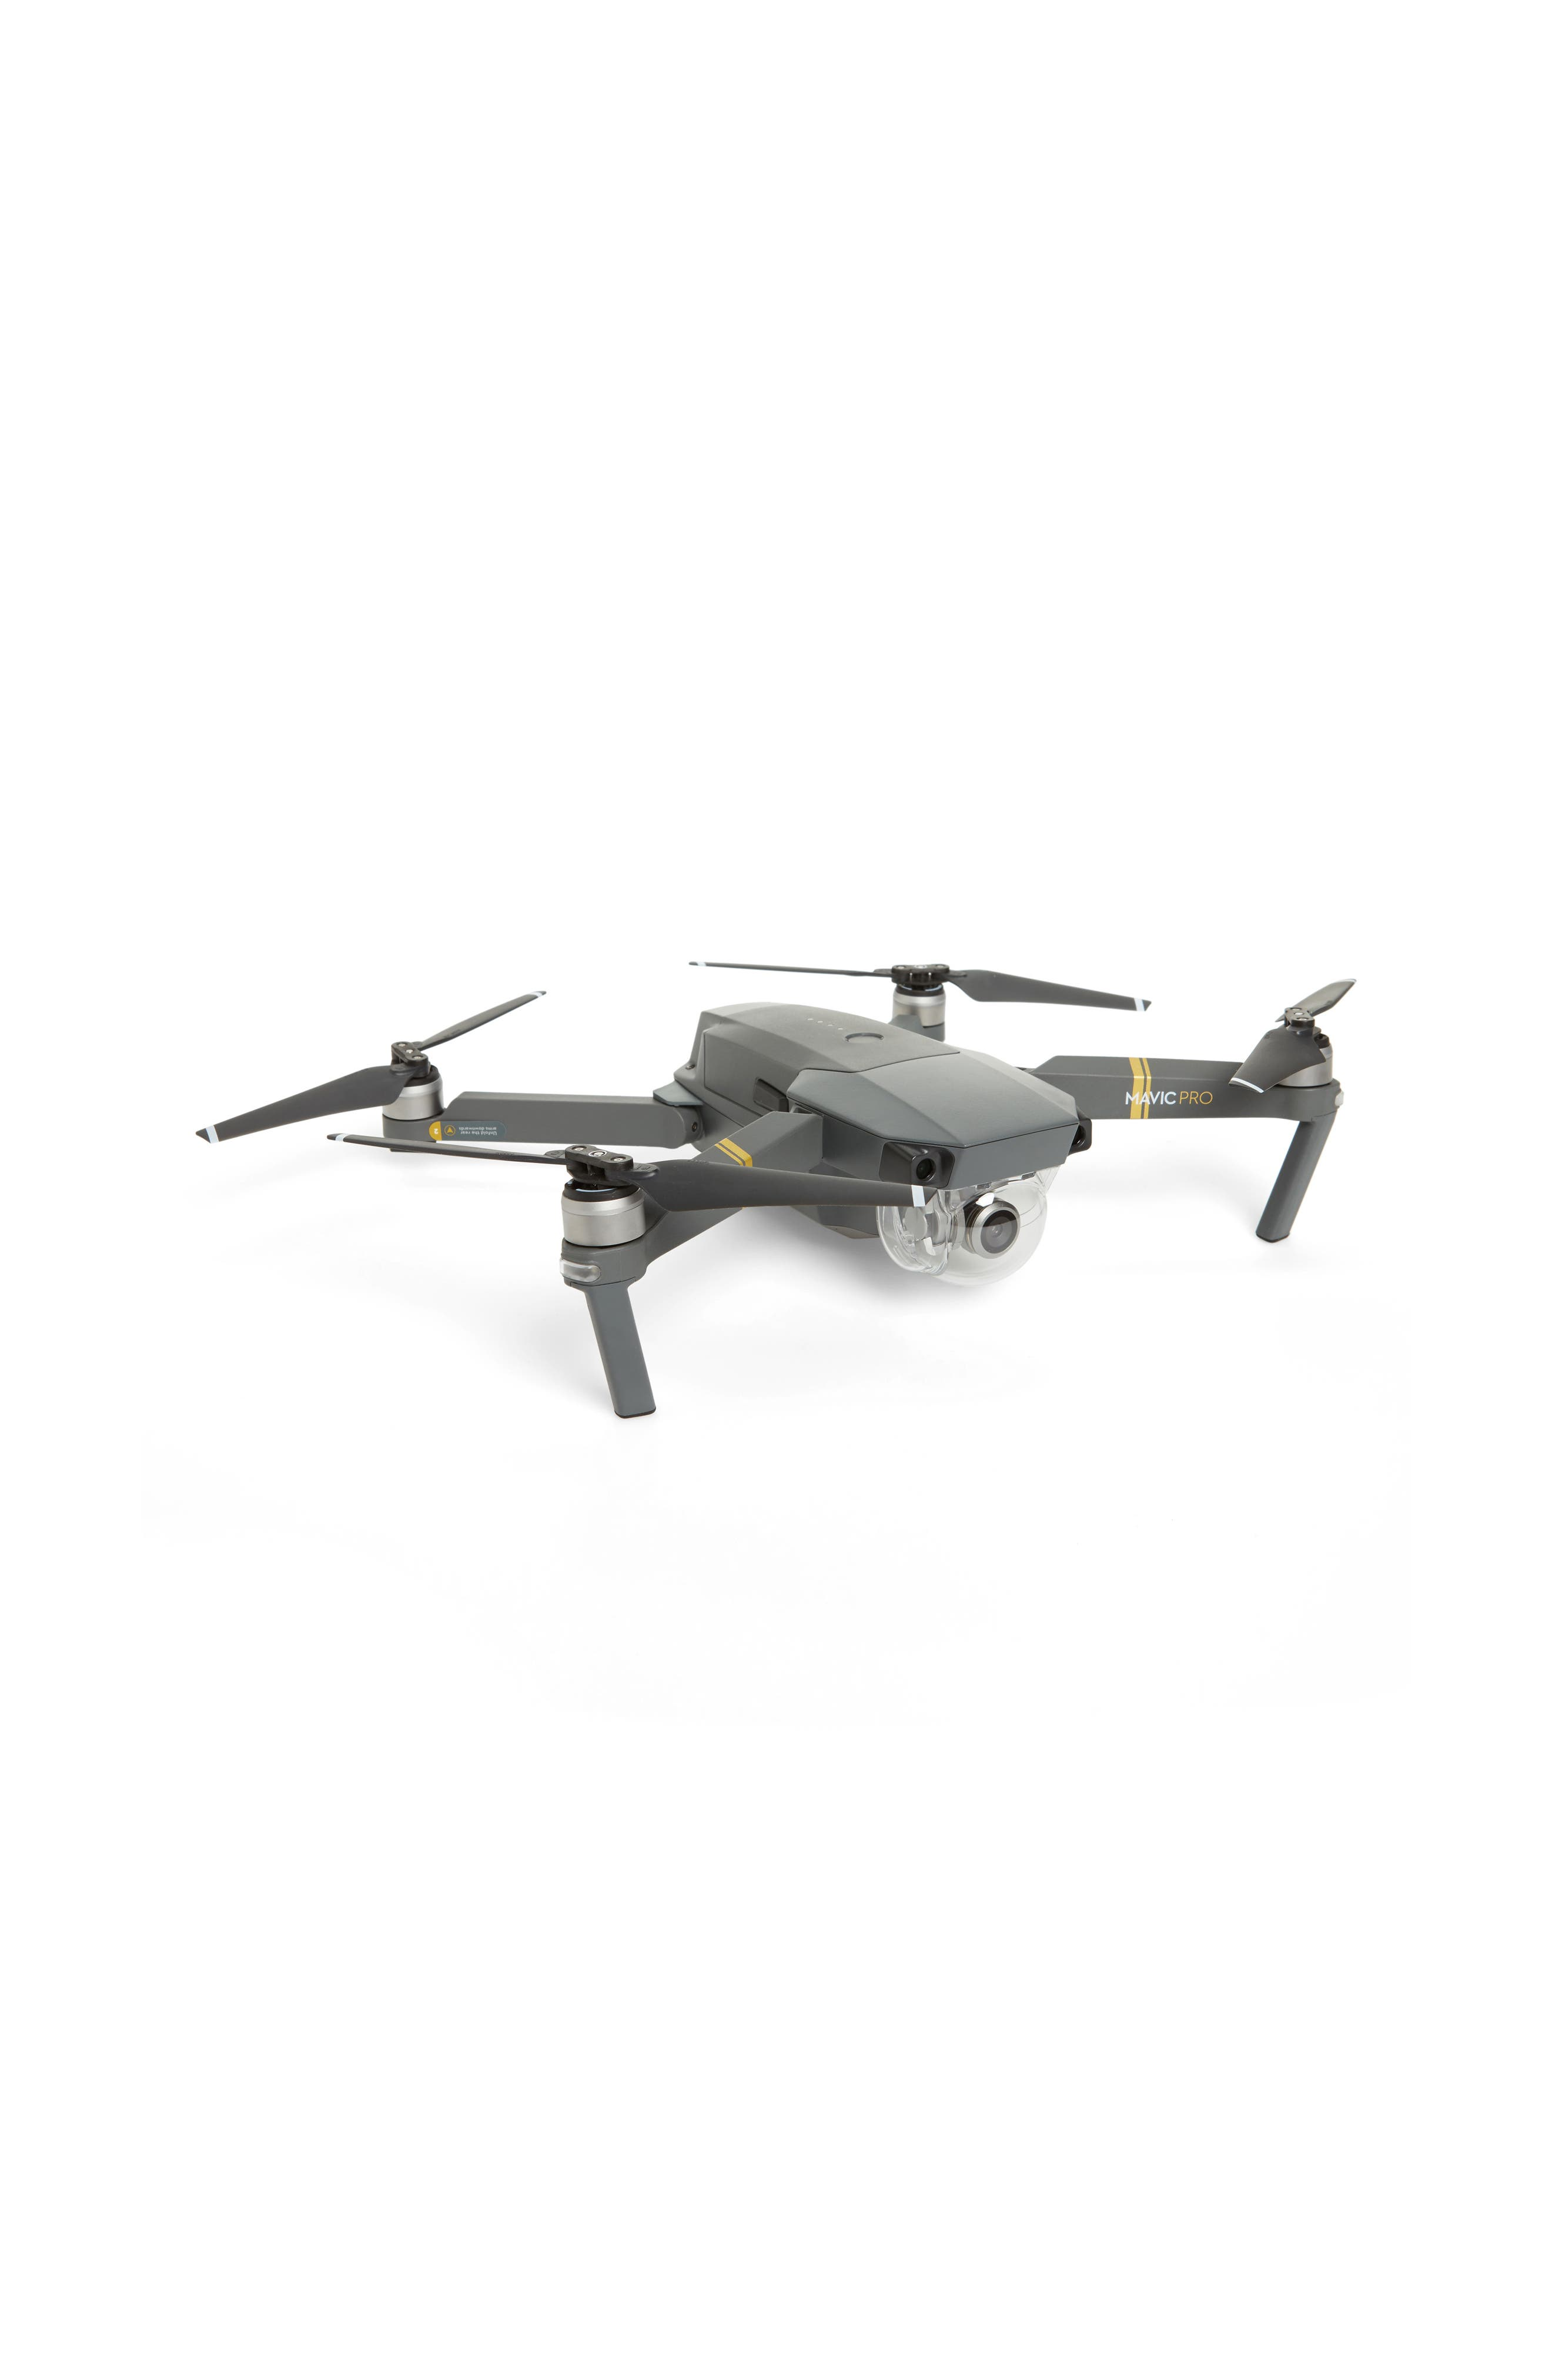 Mavic Pro Fly More Combo Foldable Flying Quadcopter,                             Main thumbnail 1, color,                             020